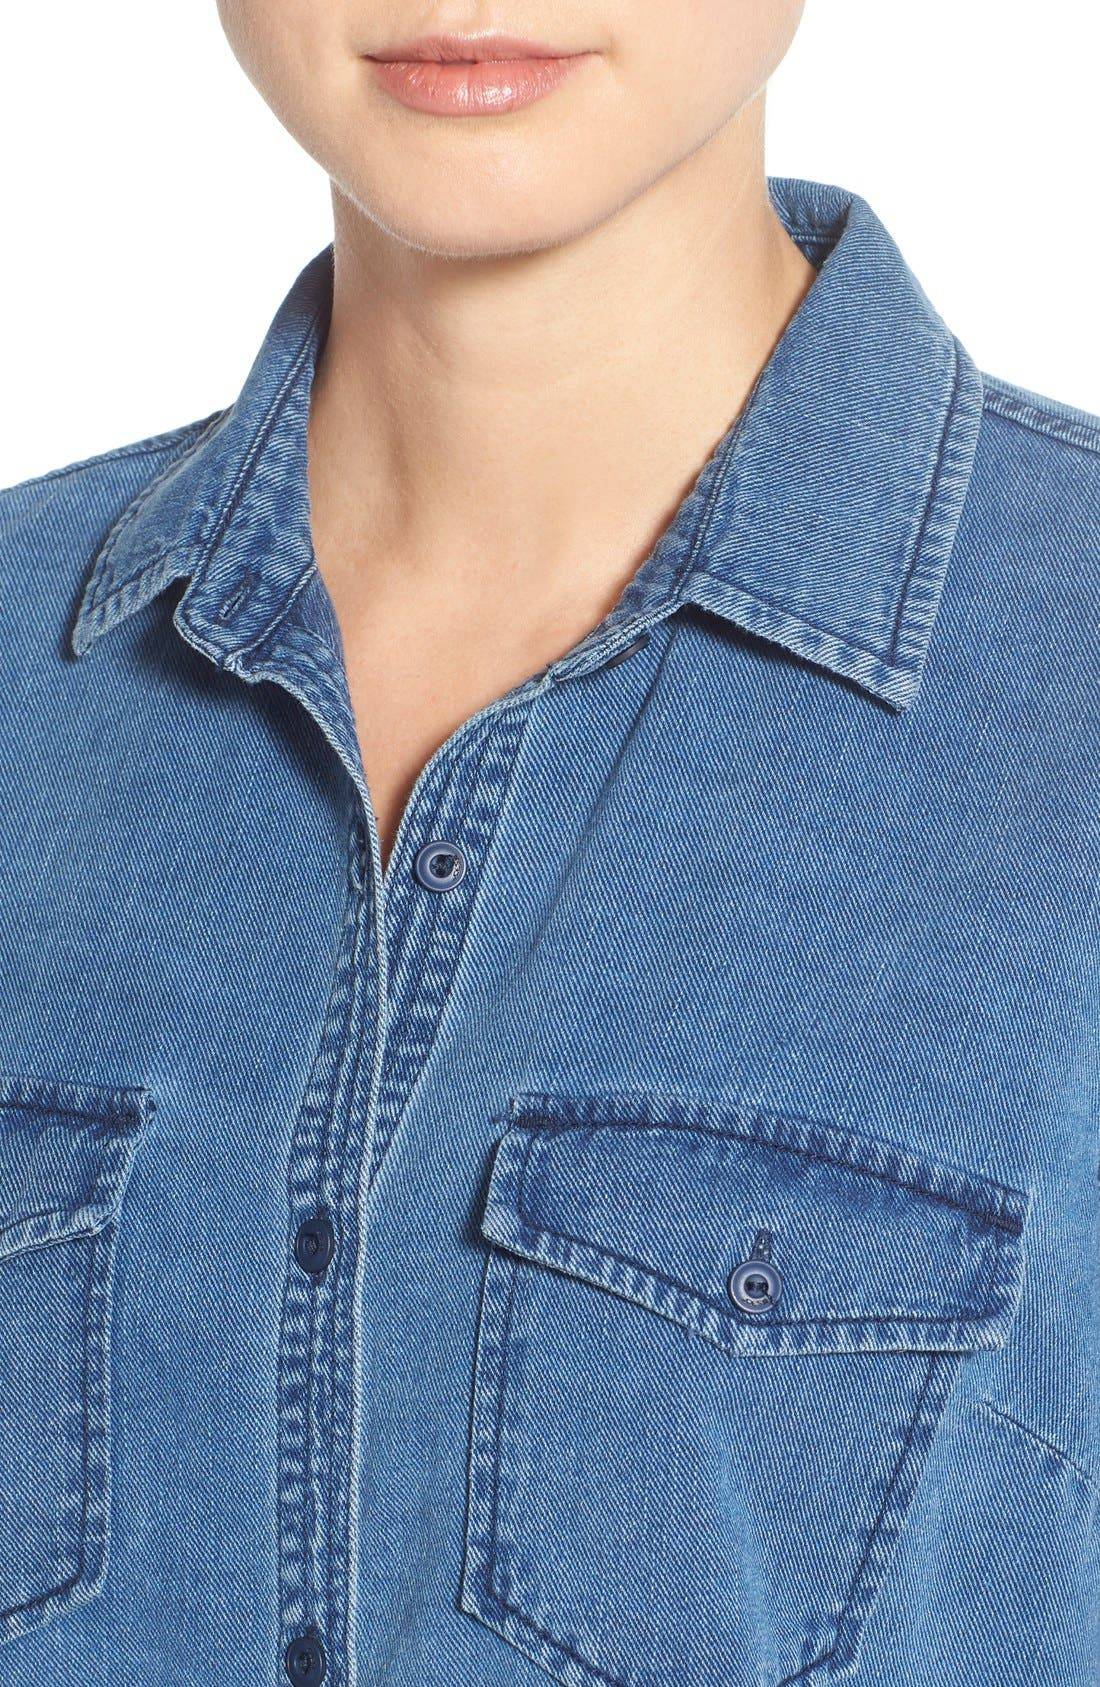 Alternate Image 4  - Joe's 'Brisa' Denim Shirt